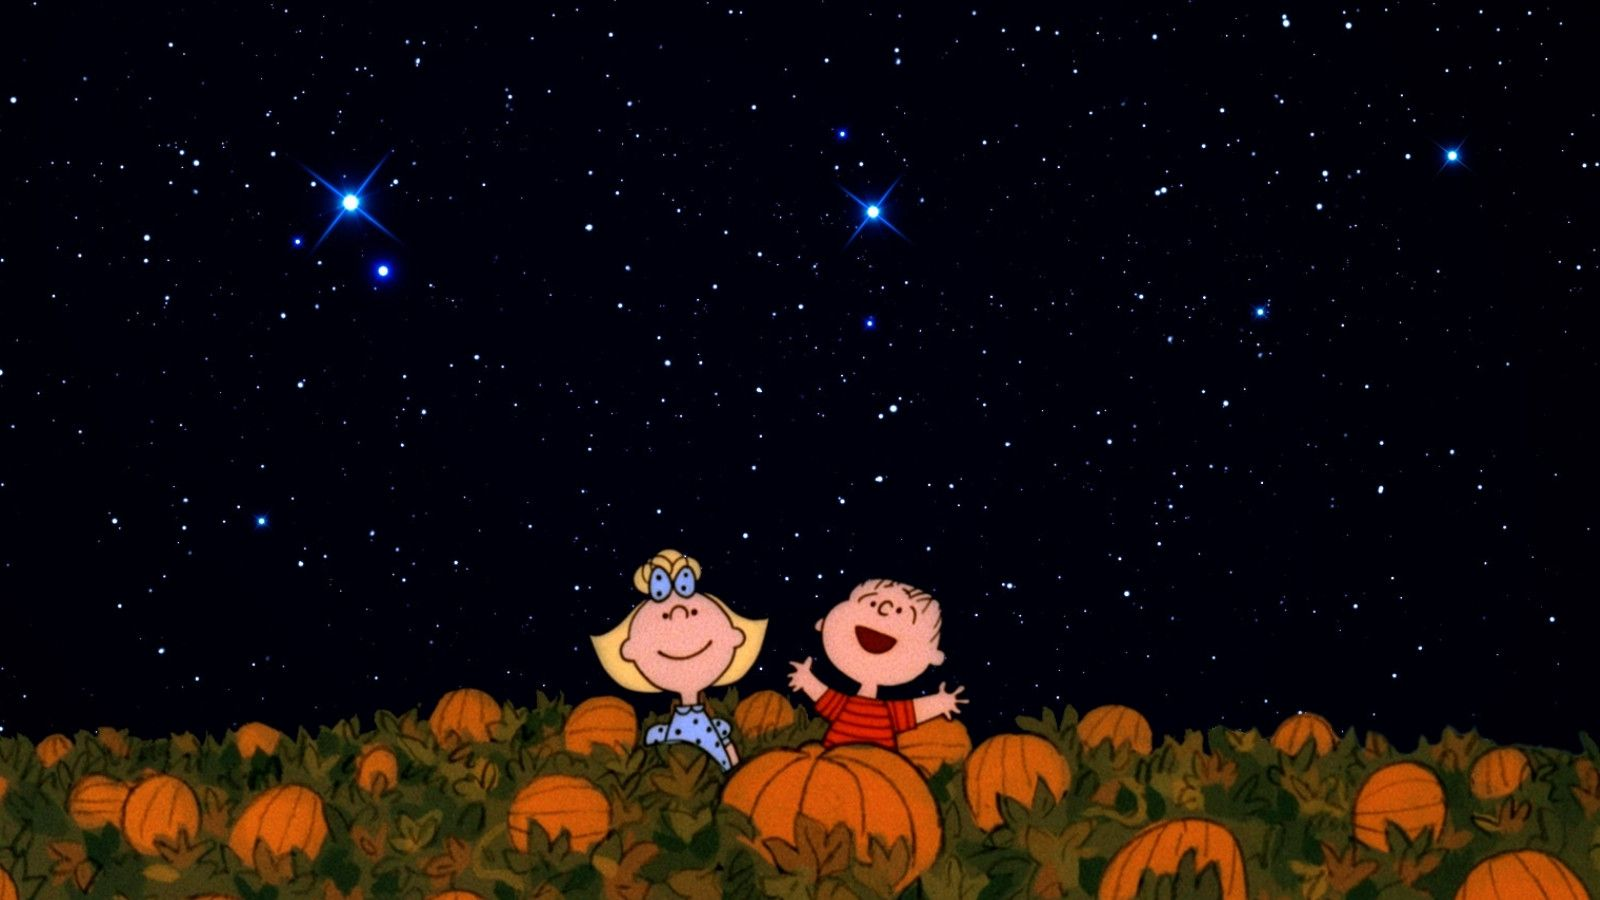 1600x900 Peanuts Halloween Wallpaper - Wallpapers Browse